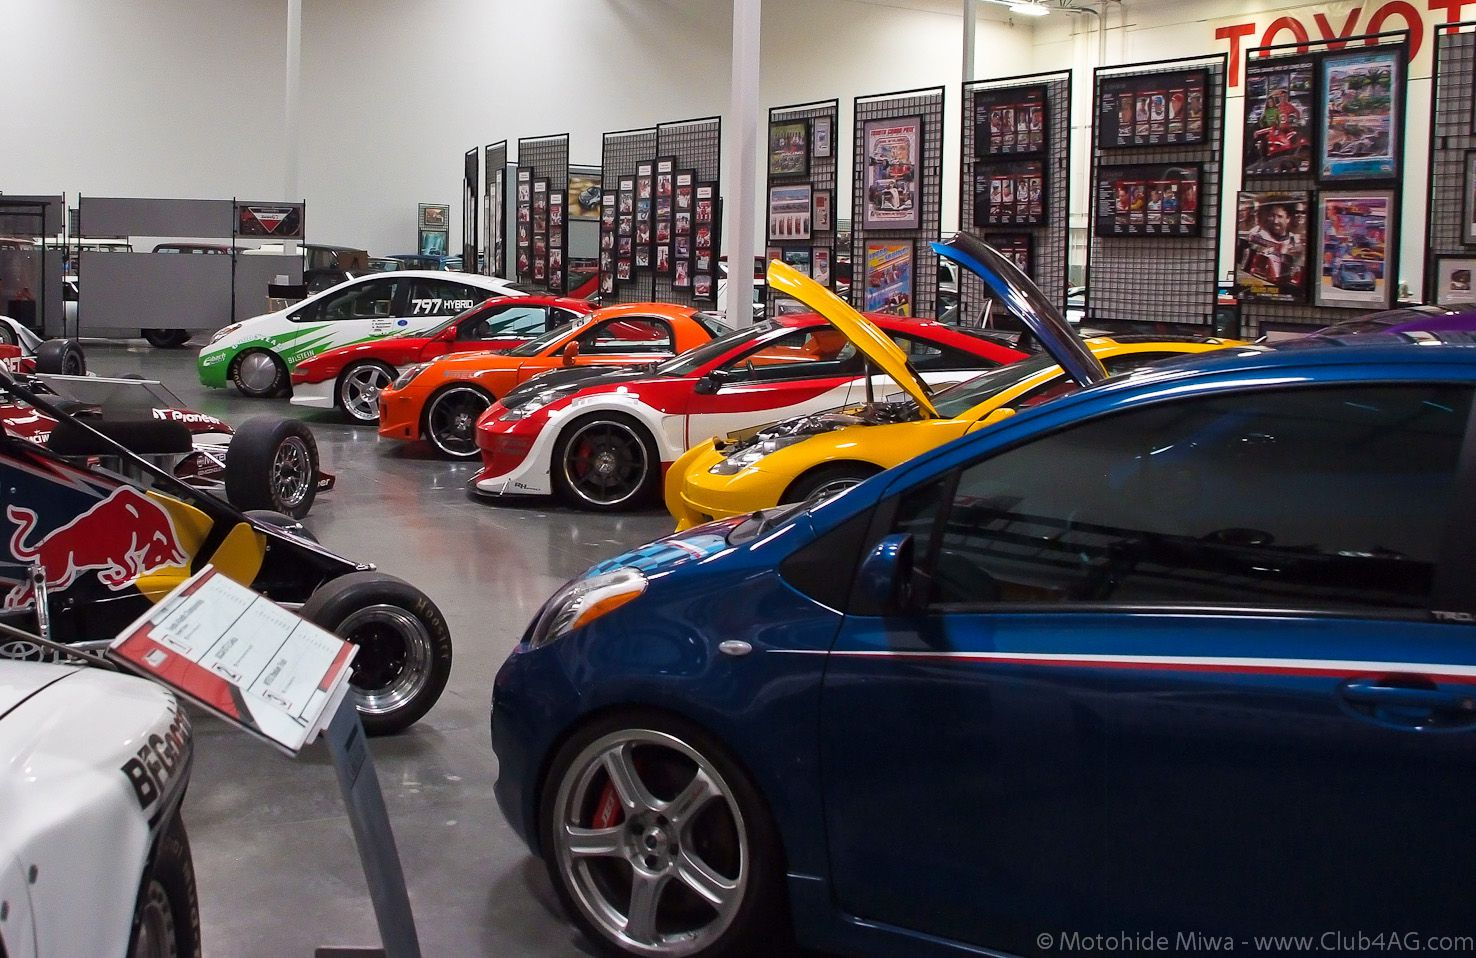 Los Angeles Car Museums And Attractions For Auto Buffs - Car show usa